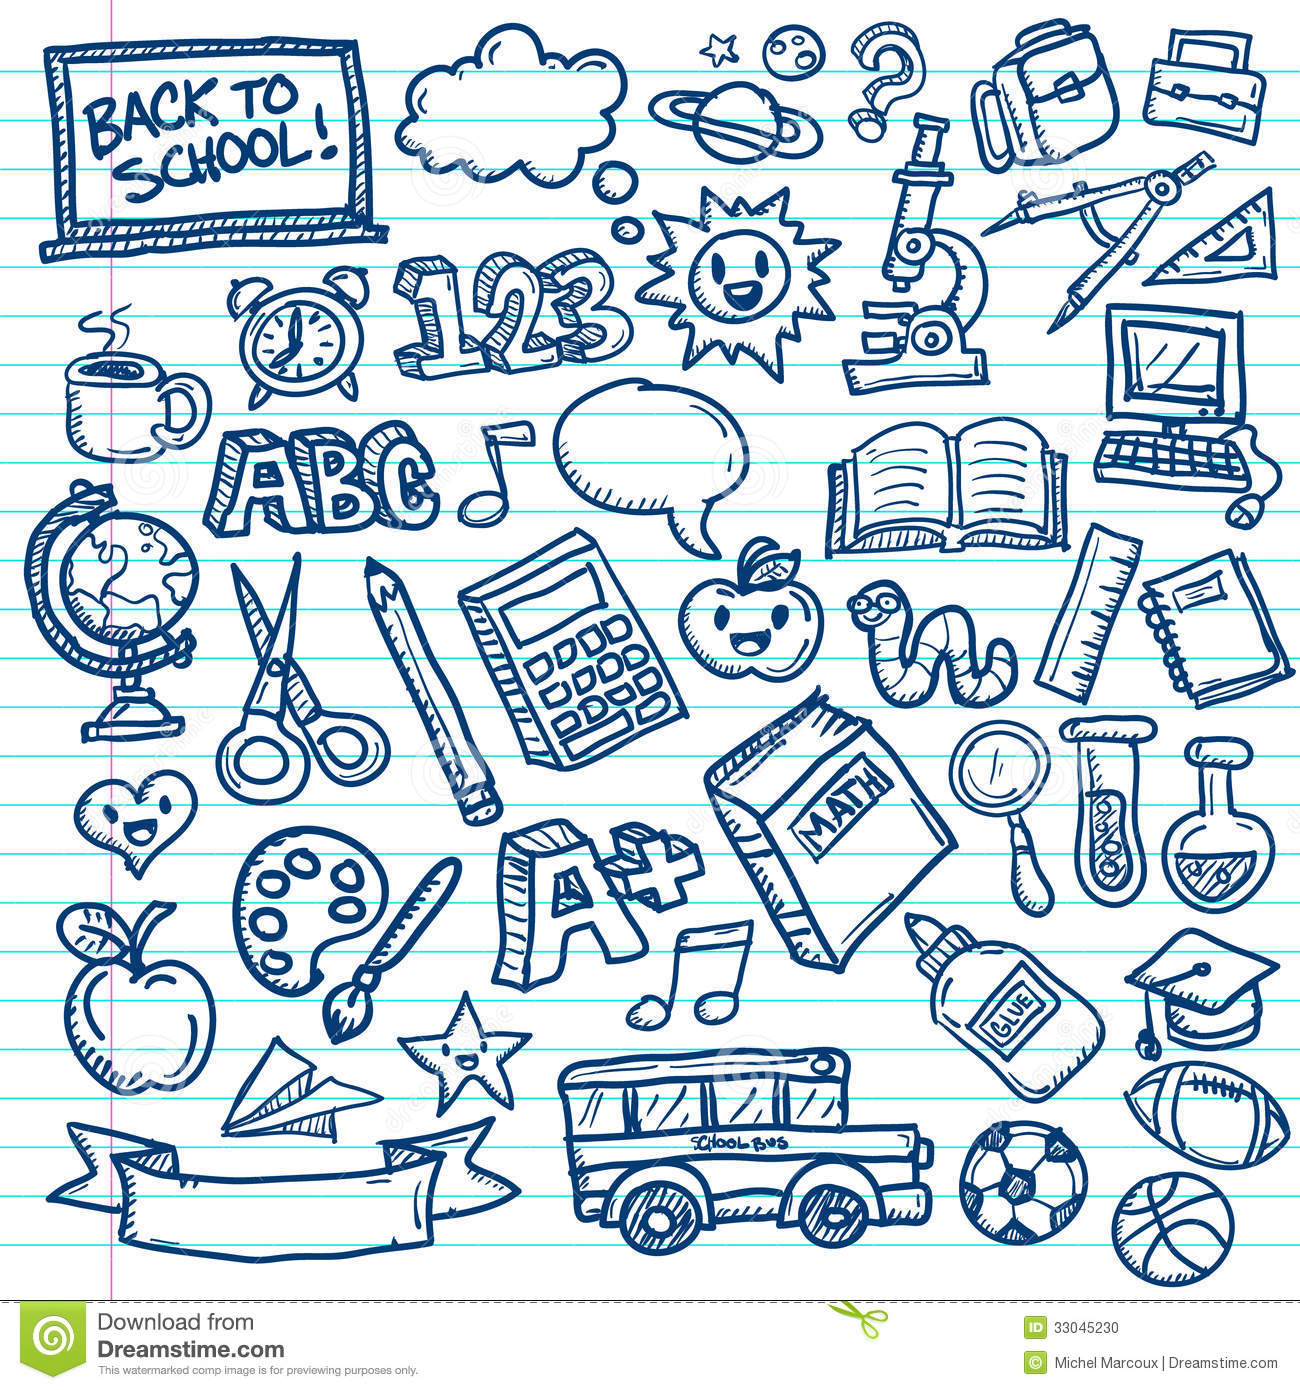 Old Time Car Wallpaper Hd School Vector Doodles Stock Photo Image 33045230